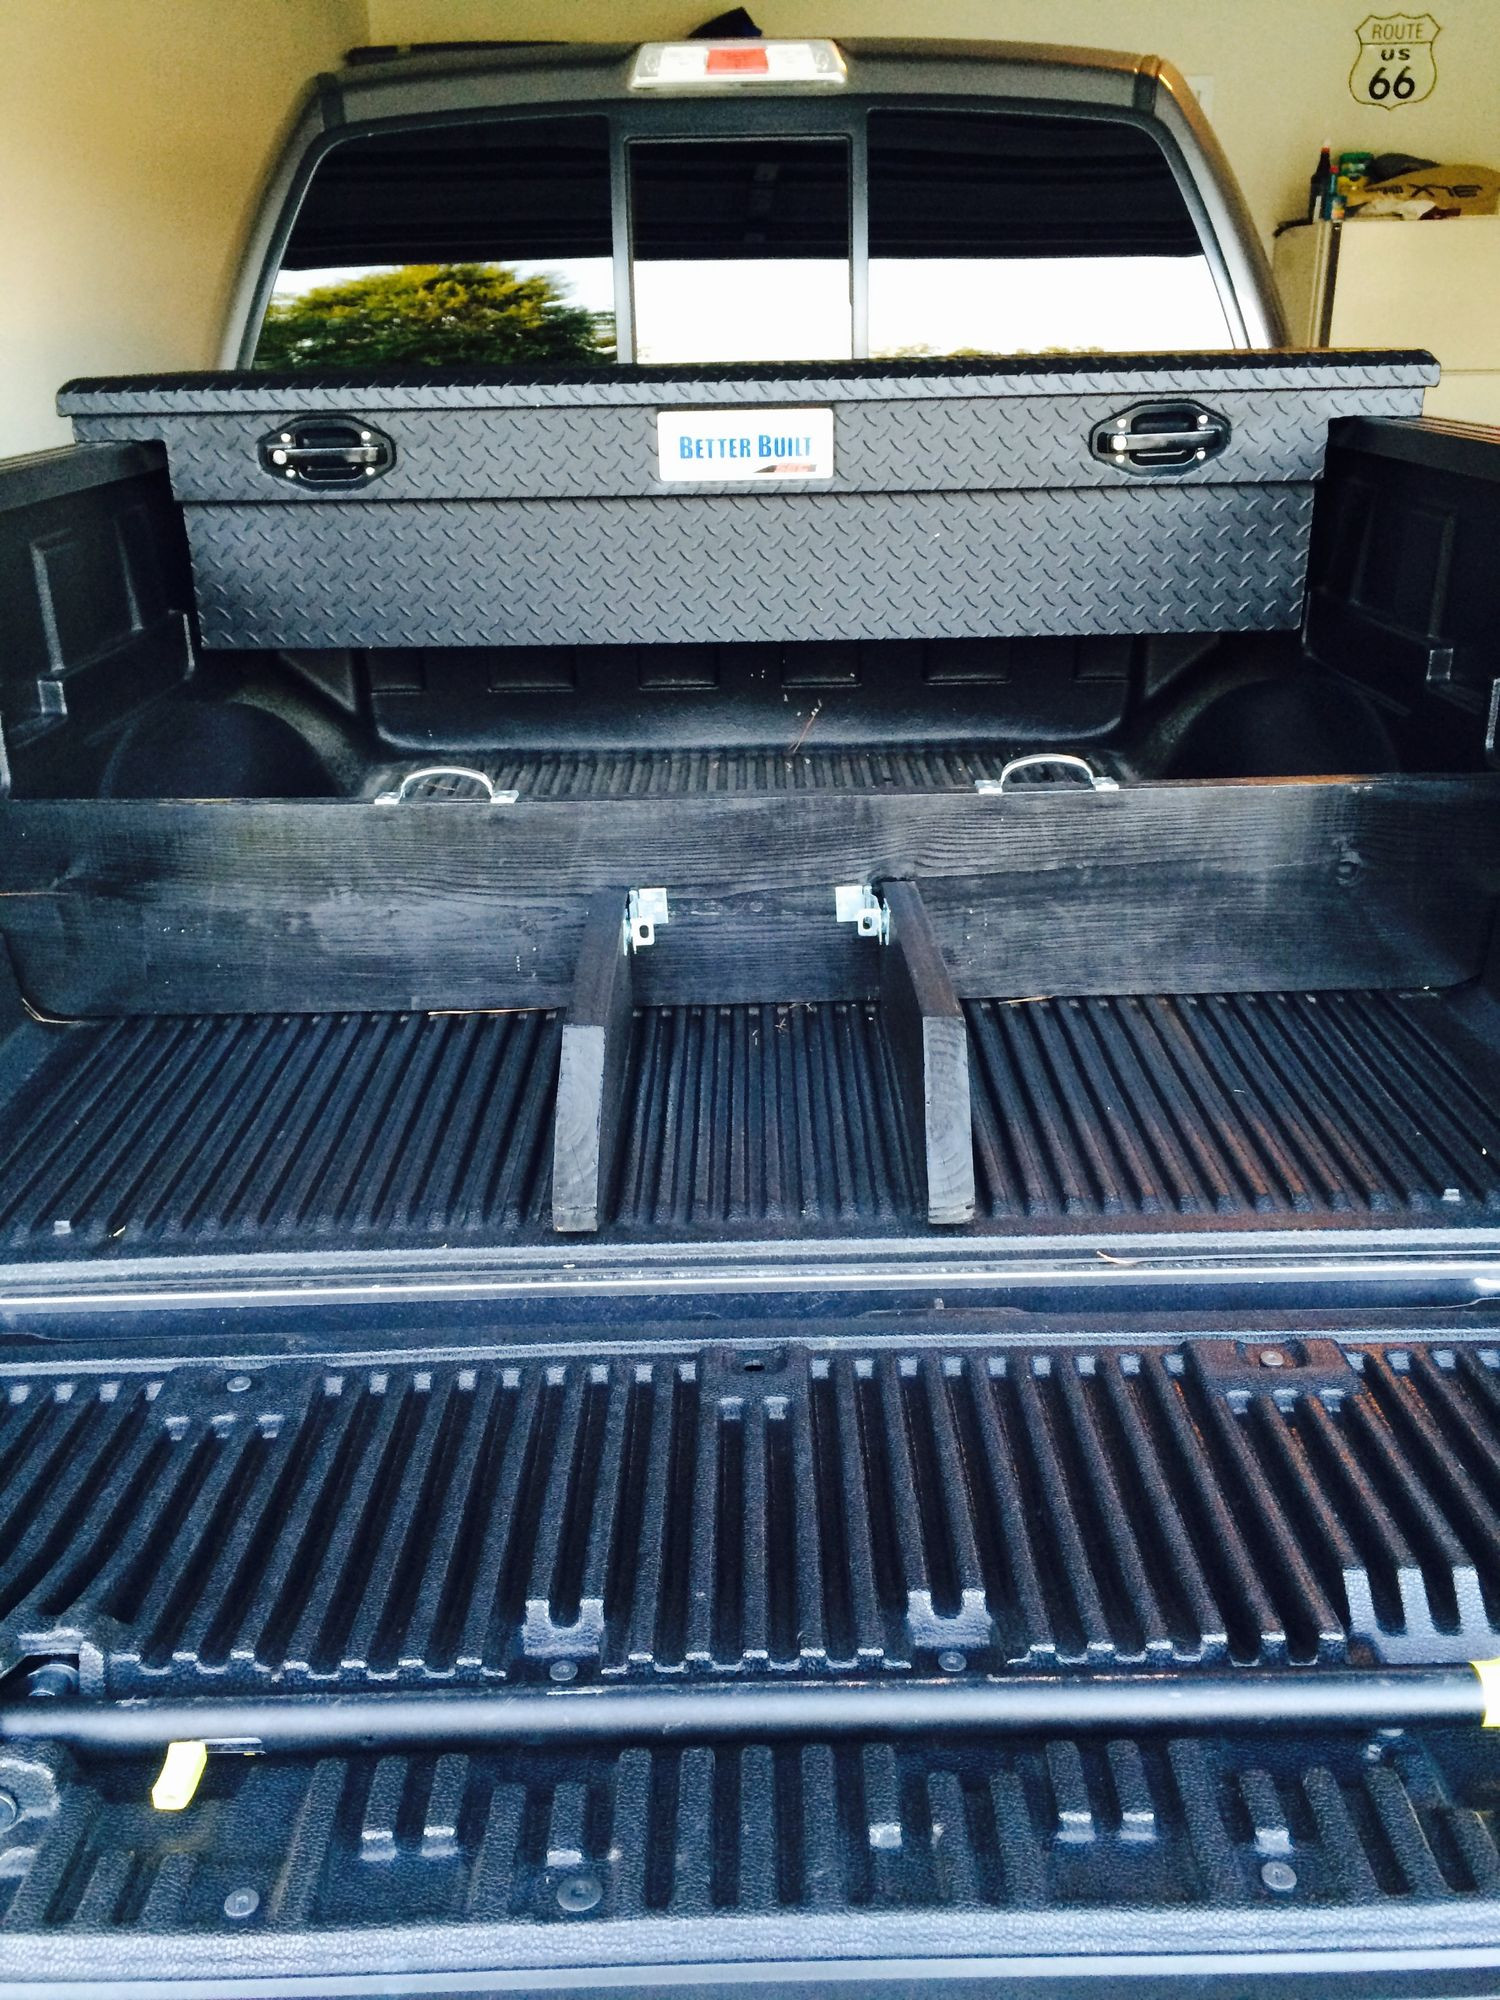 Best ideas about DIY Truck Bed Divider . Save or Pin DIY bed divider Page 3 Ford F150 Forum munity of Now.